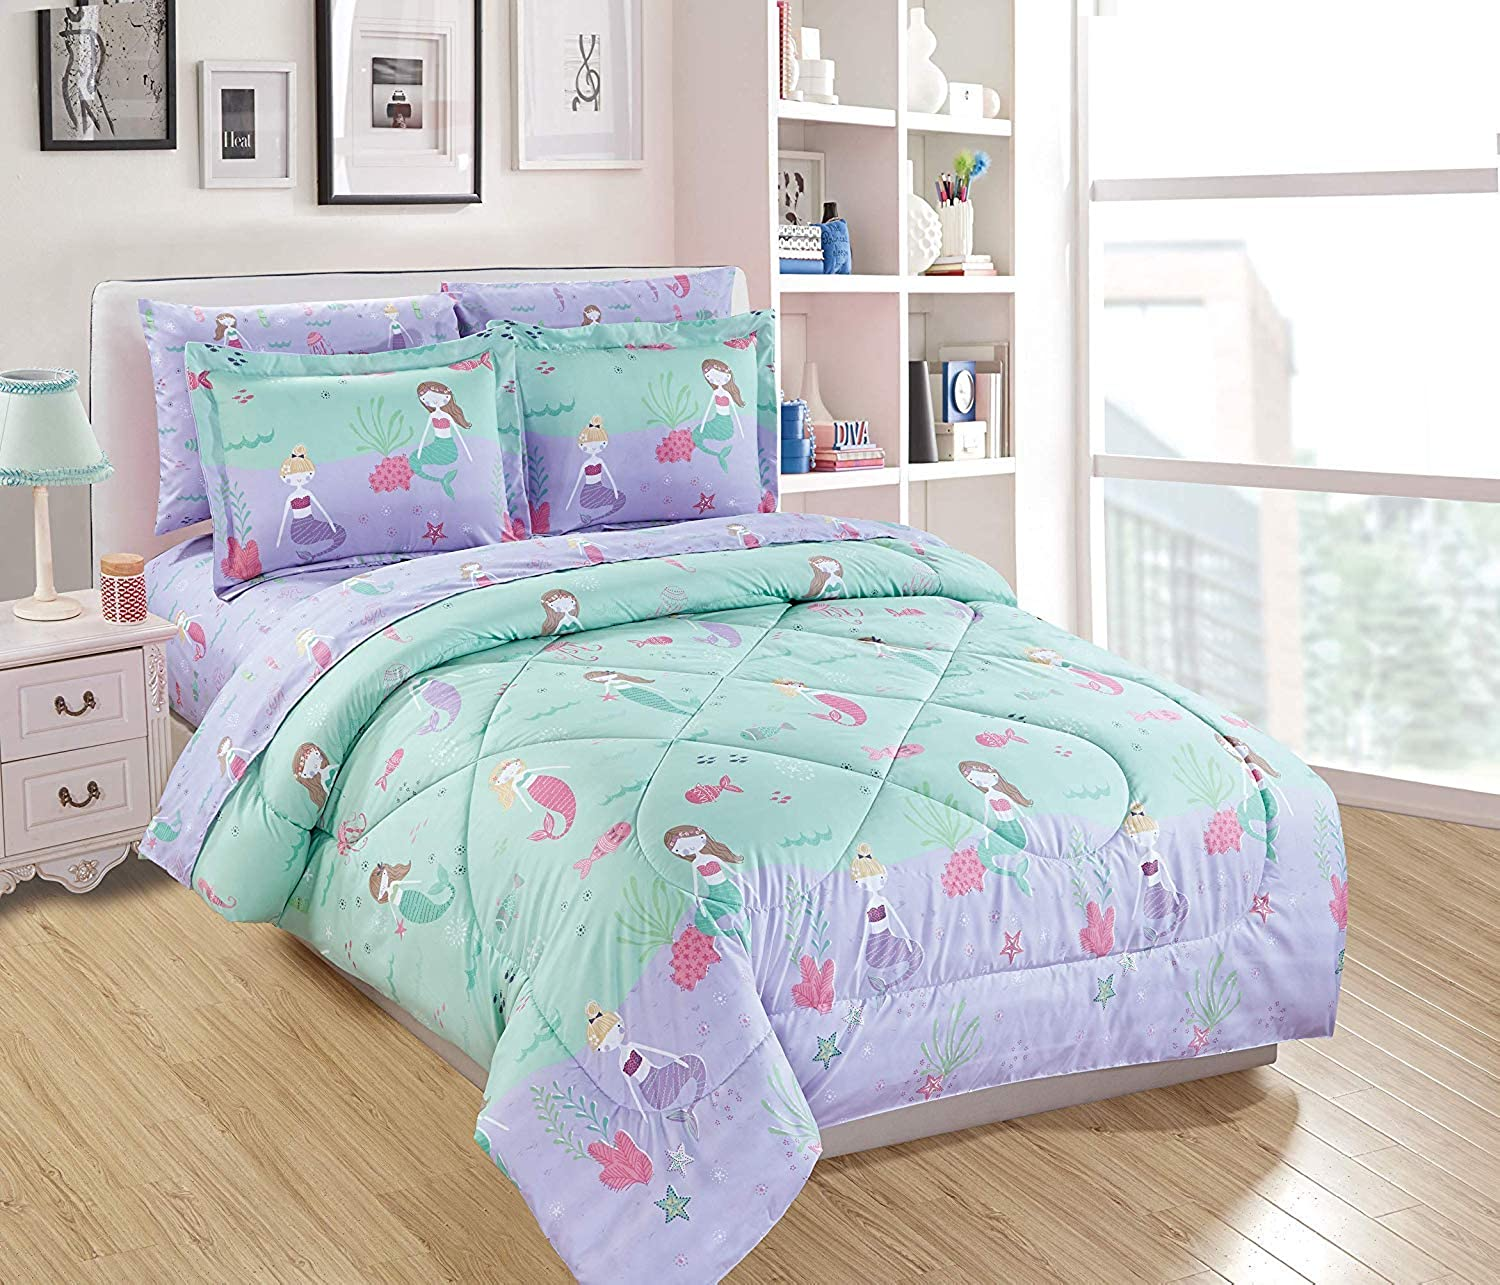 Elegant Home Multicolor Mermaid Sea Life Design 5 Piece Comforter Bedding Set for Girls Kids Bed in a Bag with Sheet Set   Mermaid (Twin Size)